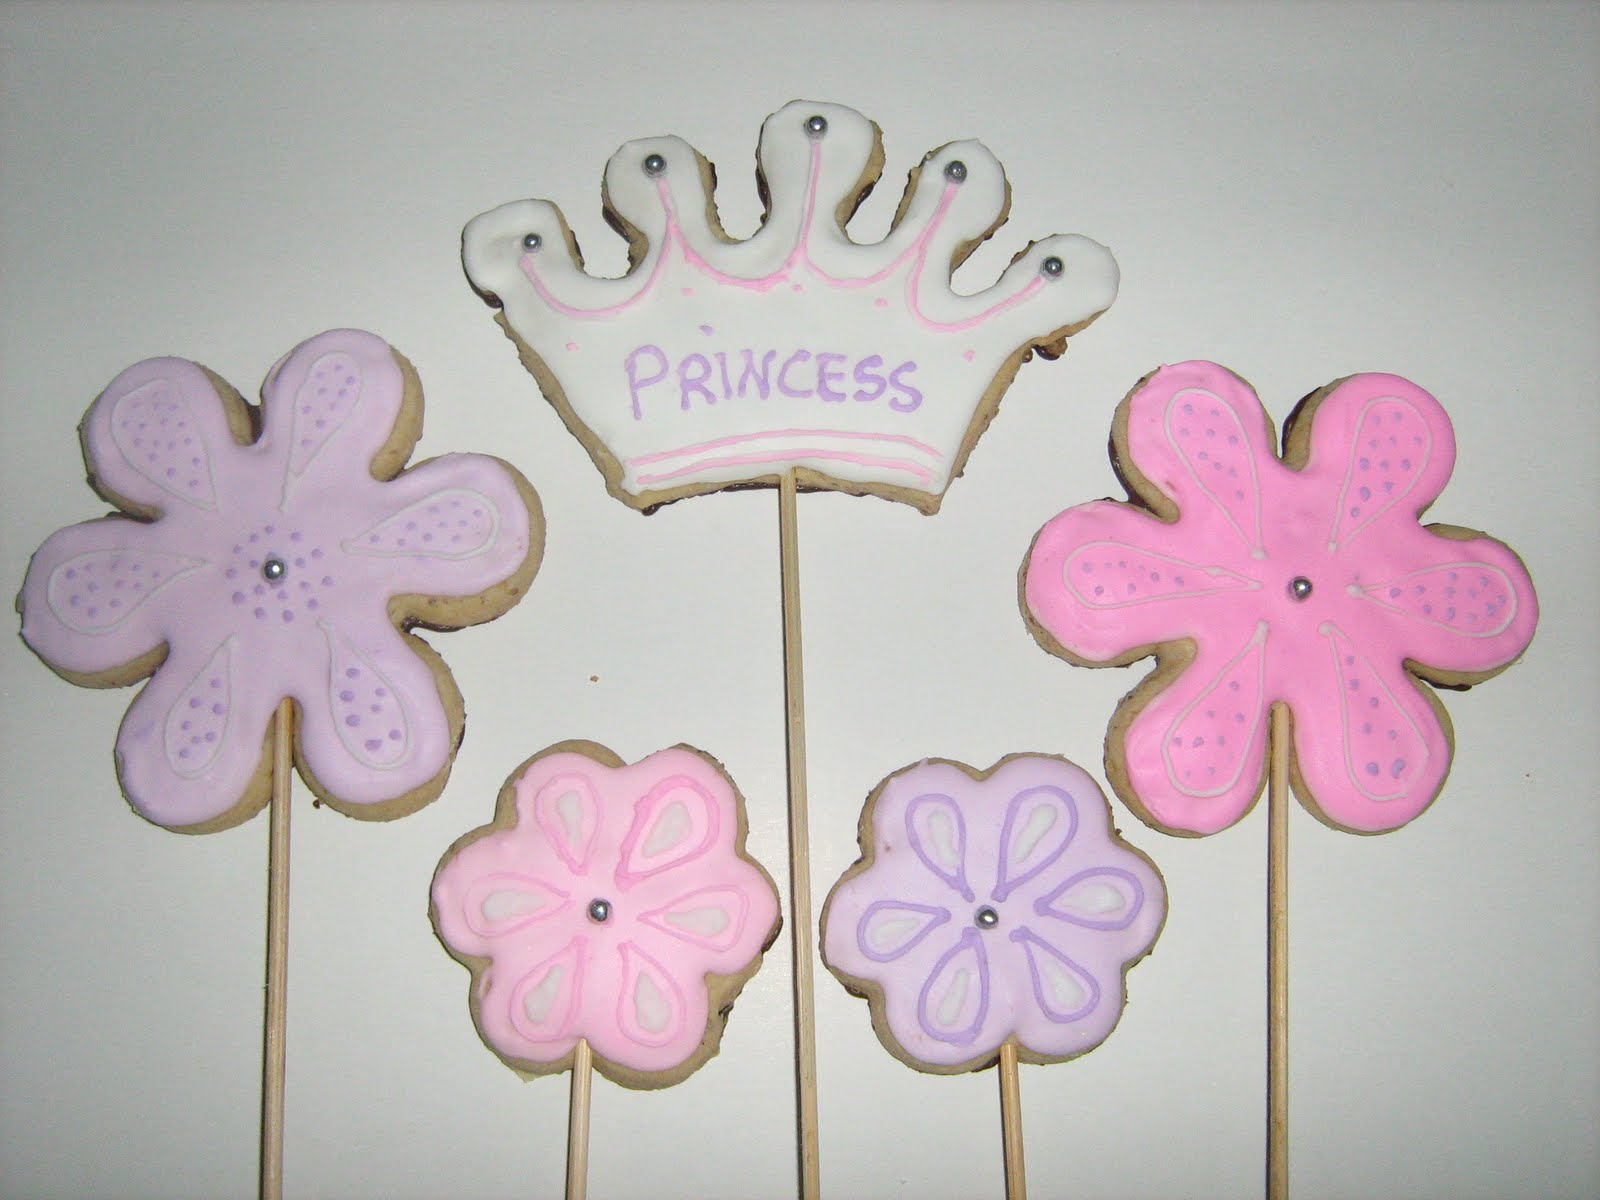 Galletas Decoradas De Princesas Galletas Decoradas Muffins Tachi Dia De Princesas